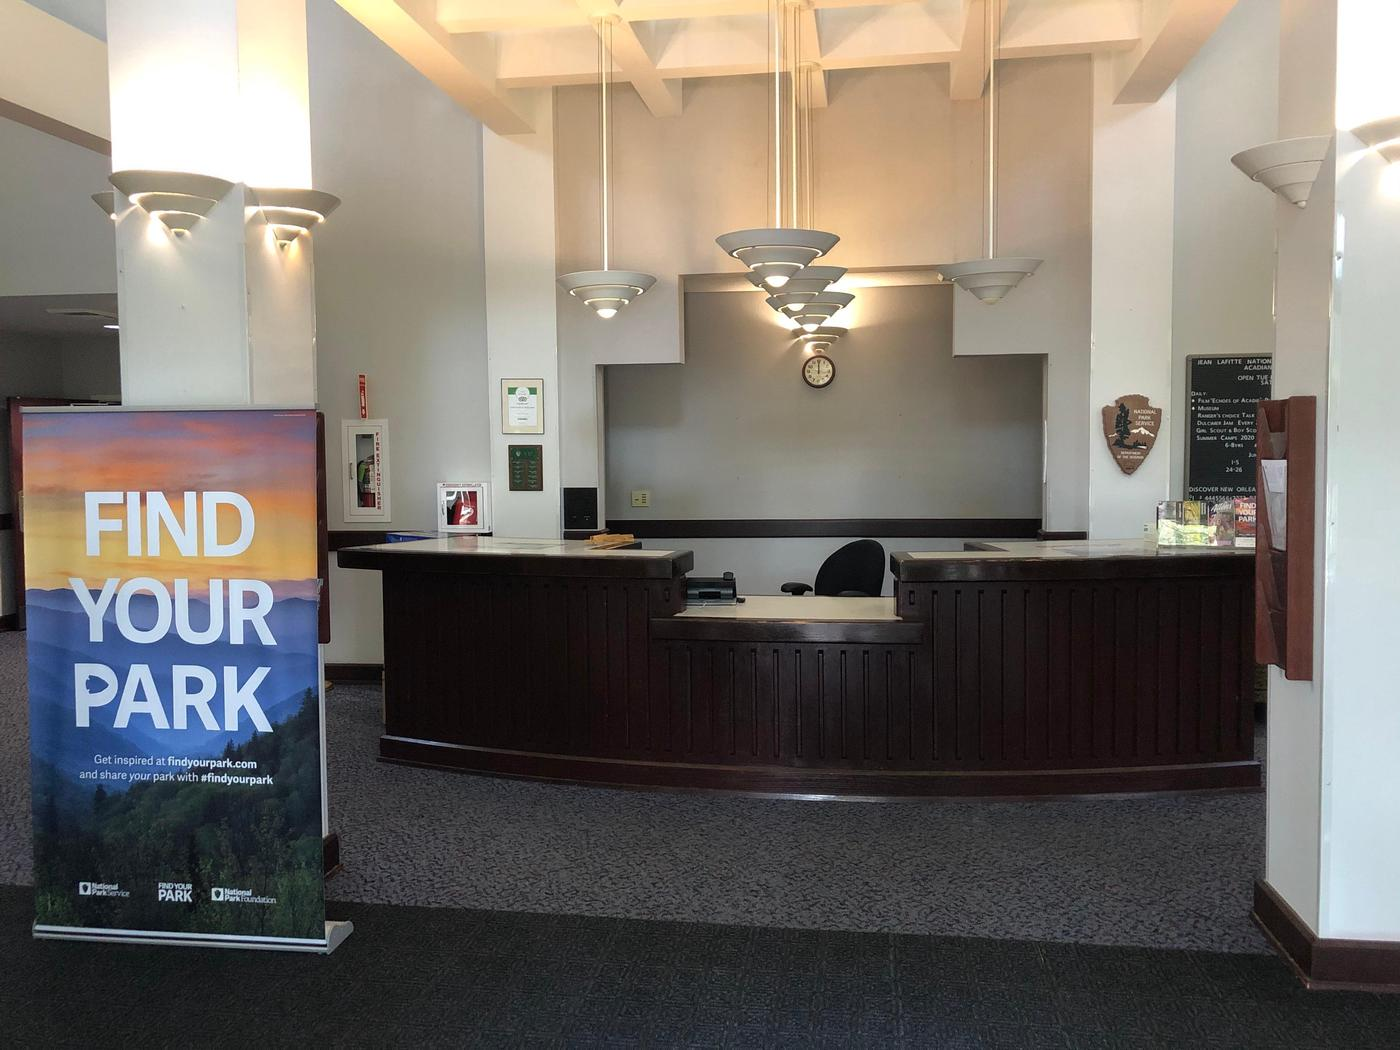 ACC Front DeskThe front desk is a great place to start your visit